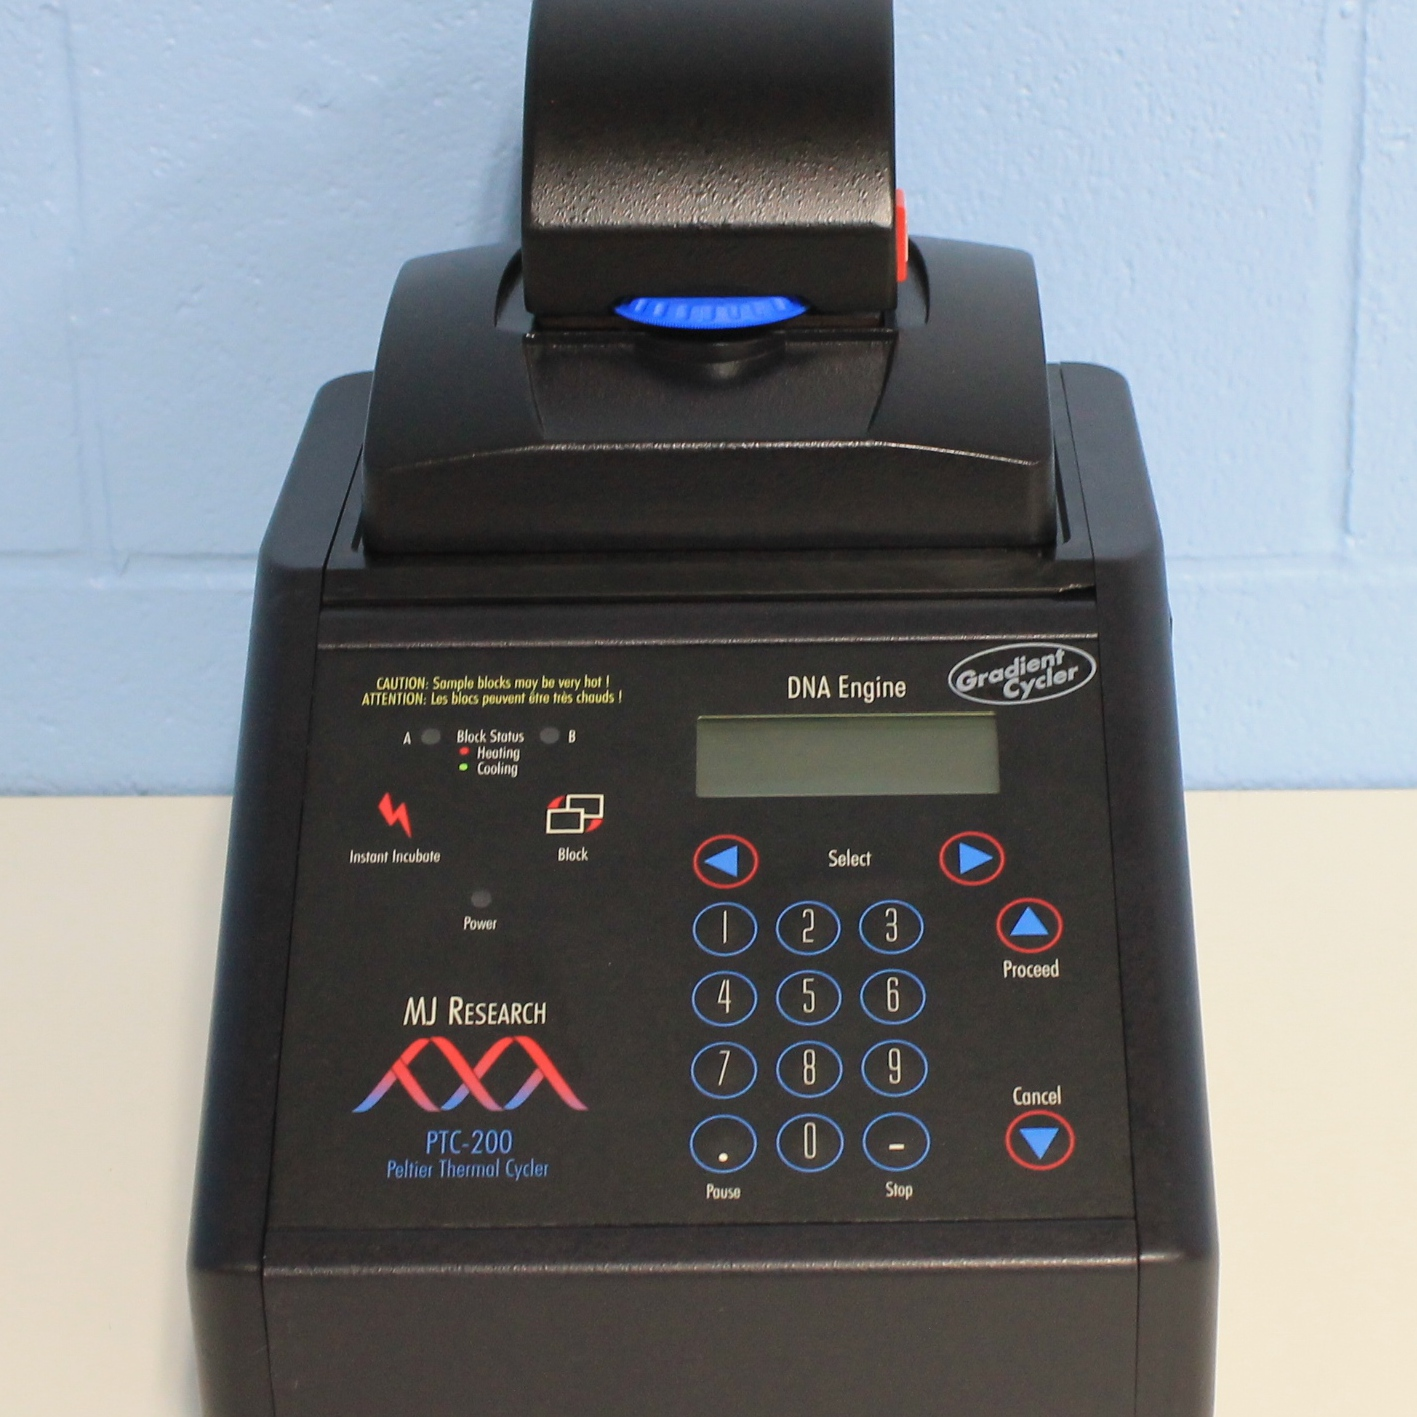 MJ Research PTC-200 Gradient Peltier Thermal Cycler with Power Bonnet Lid Image